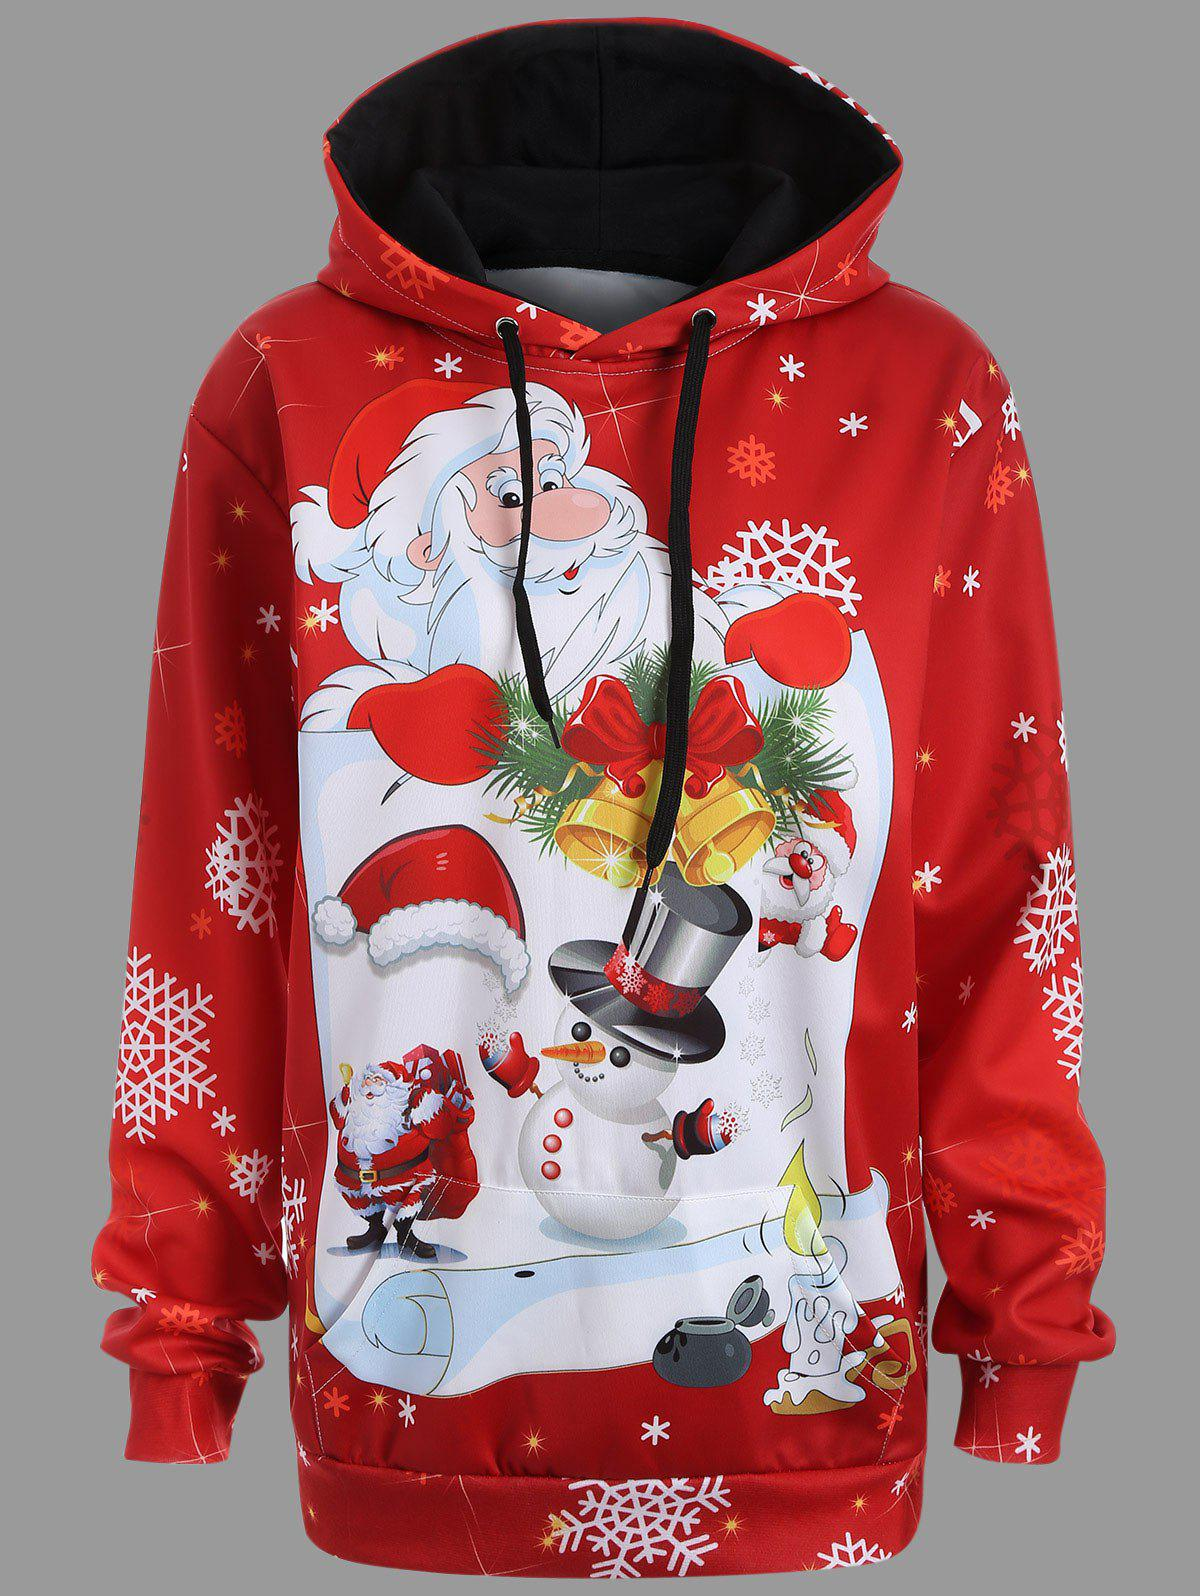 Christmas Santa Claus Kangaroo Pocket Tunic HoodieWOMEN<br><br>Size: XL; Color: RED; Material: Polyester,Spandex; Shirt Length: Long; Sleeve Length: Full; Style: Casual; Pattern Style: Character; Season: Fall,Spring; Weight: 0.4000kg; Package Contents: 1 x Hoodie;